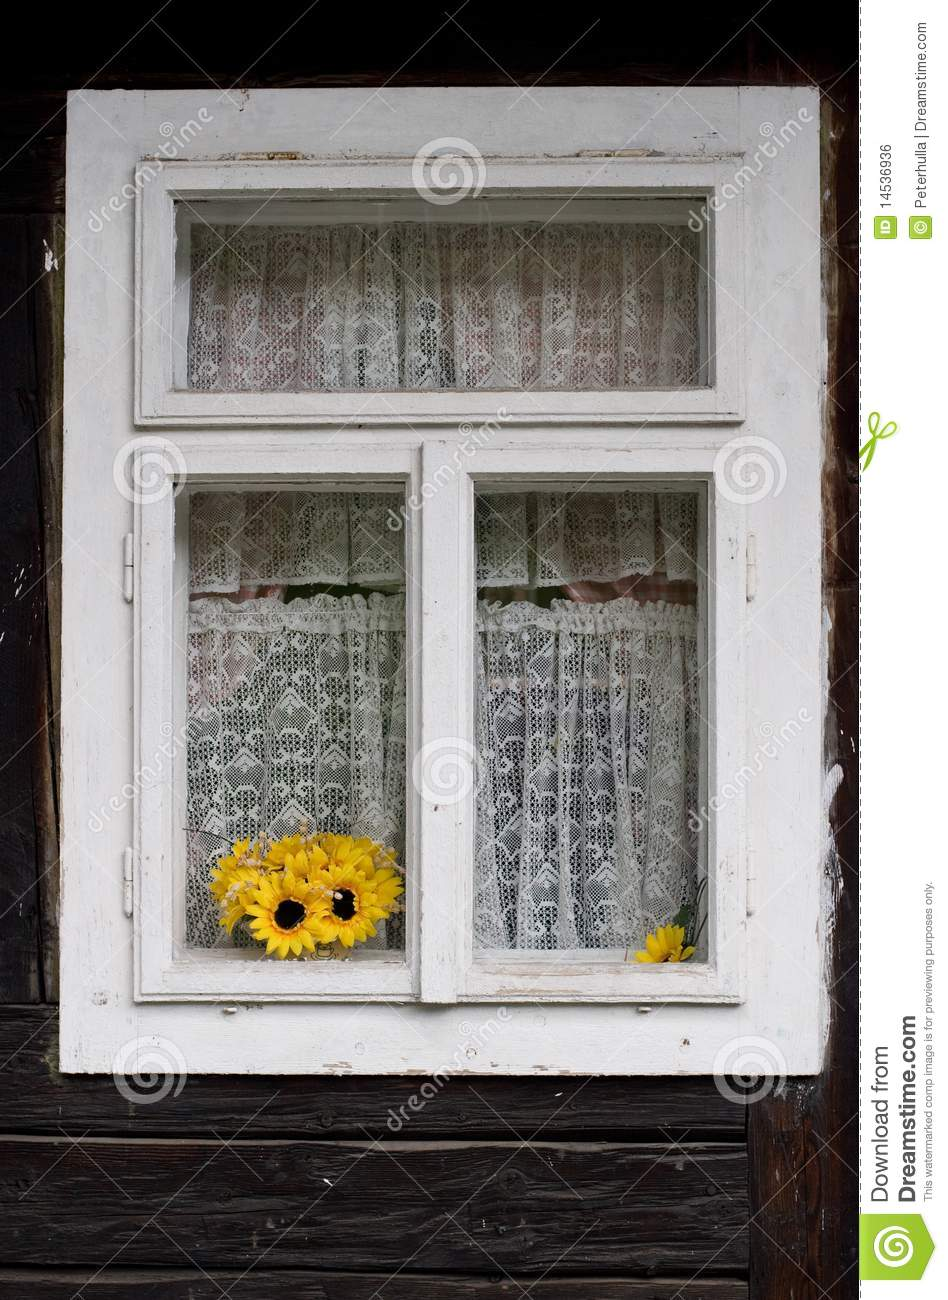 Yellow sunflowers in a window